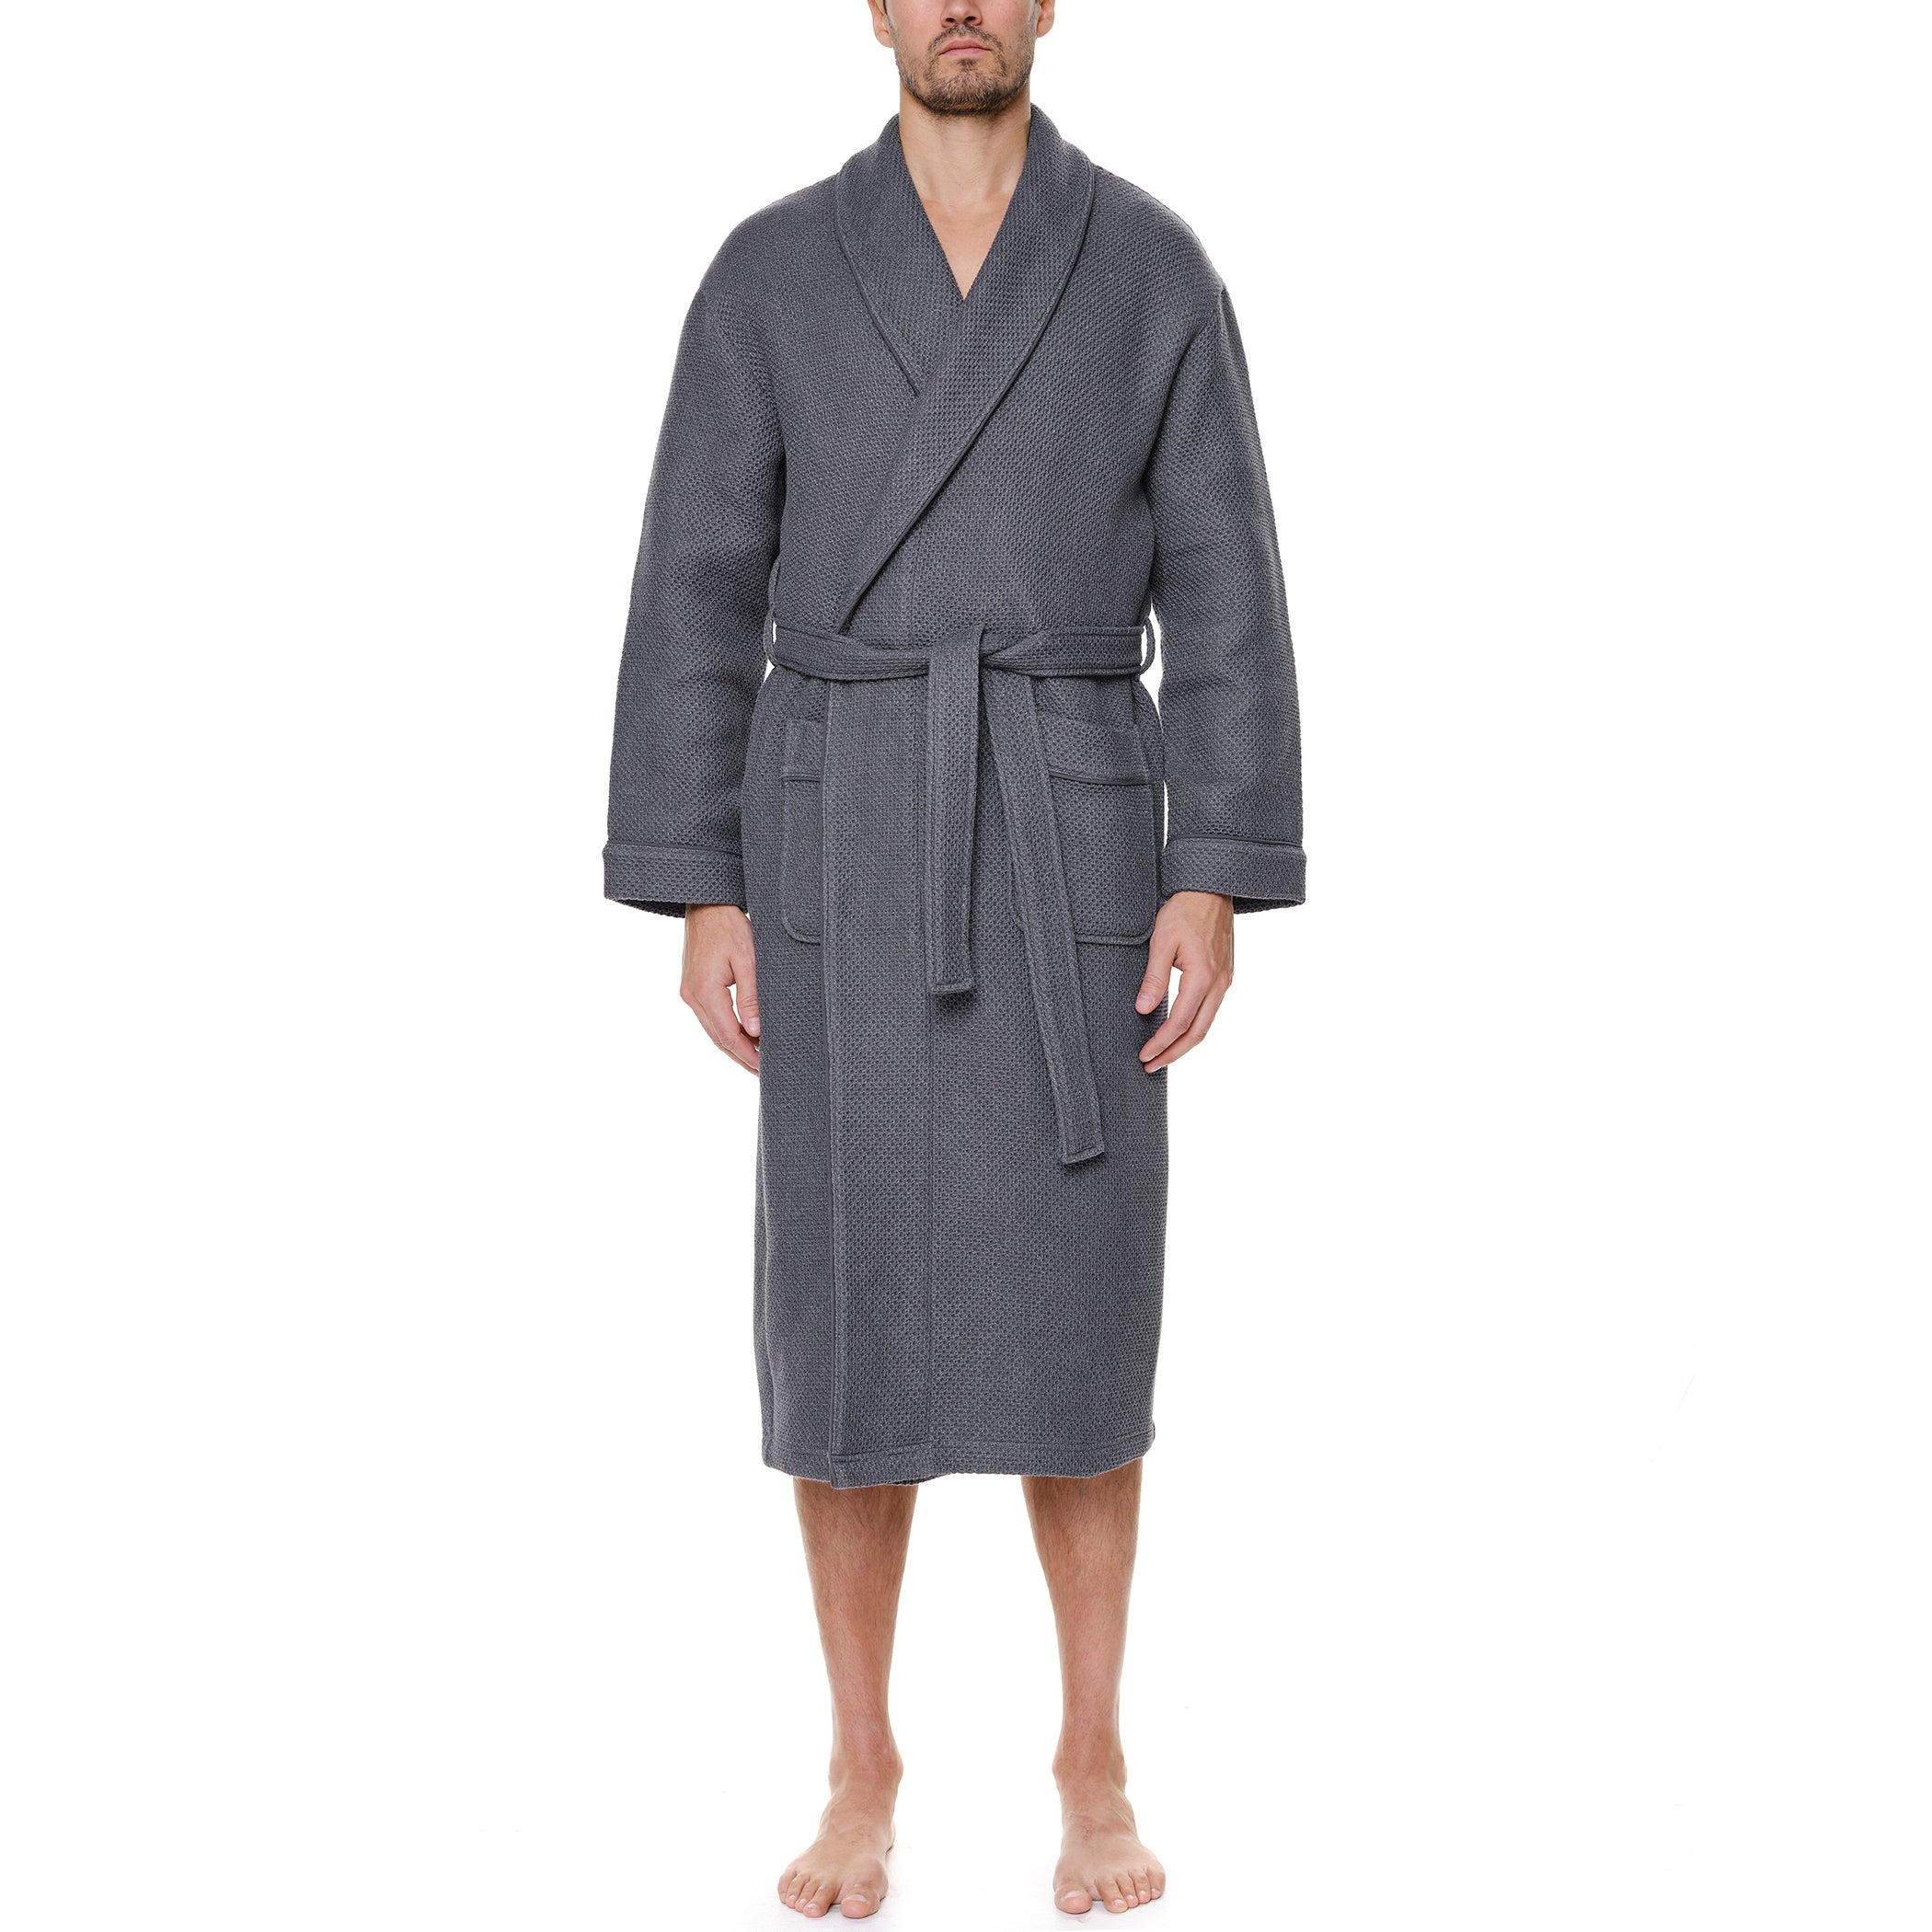 Weathered Honeycomb Robe